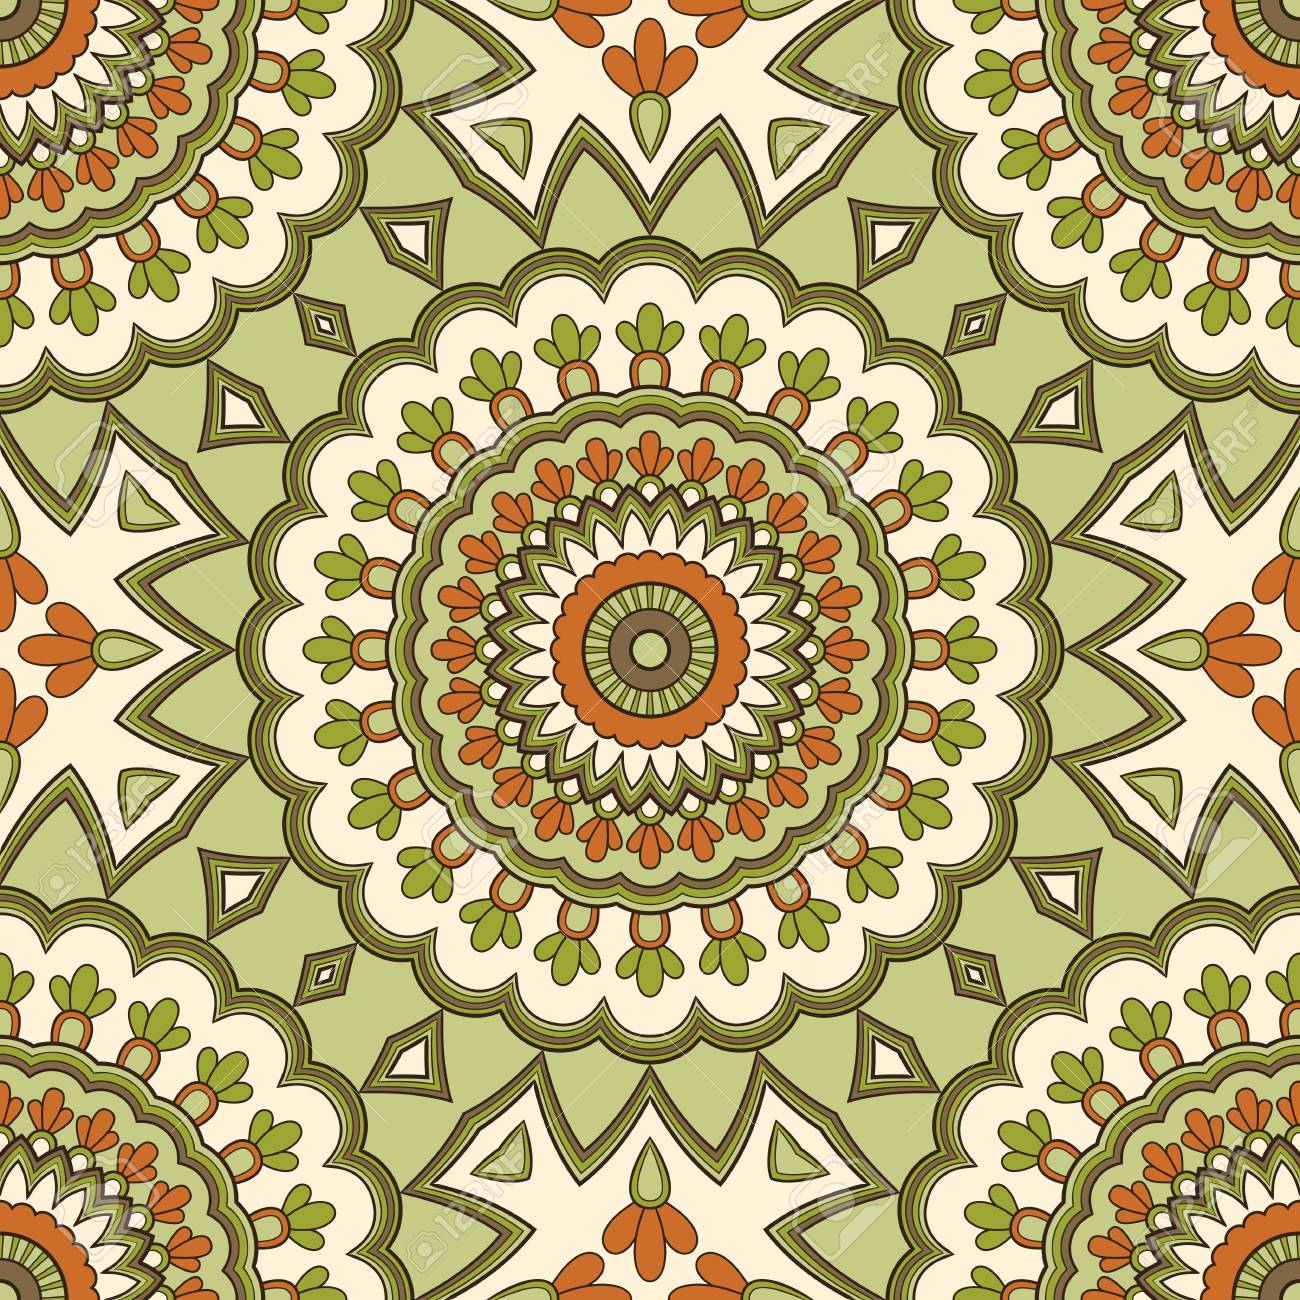 Decorative colorful ethnic seamless pattern for fabric or wrapping in oriental style. Hand drawn illustration - 126479516